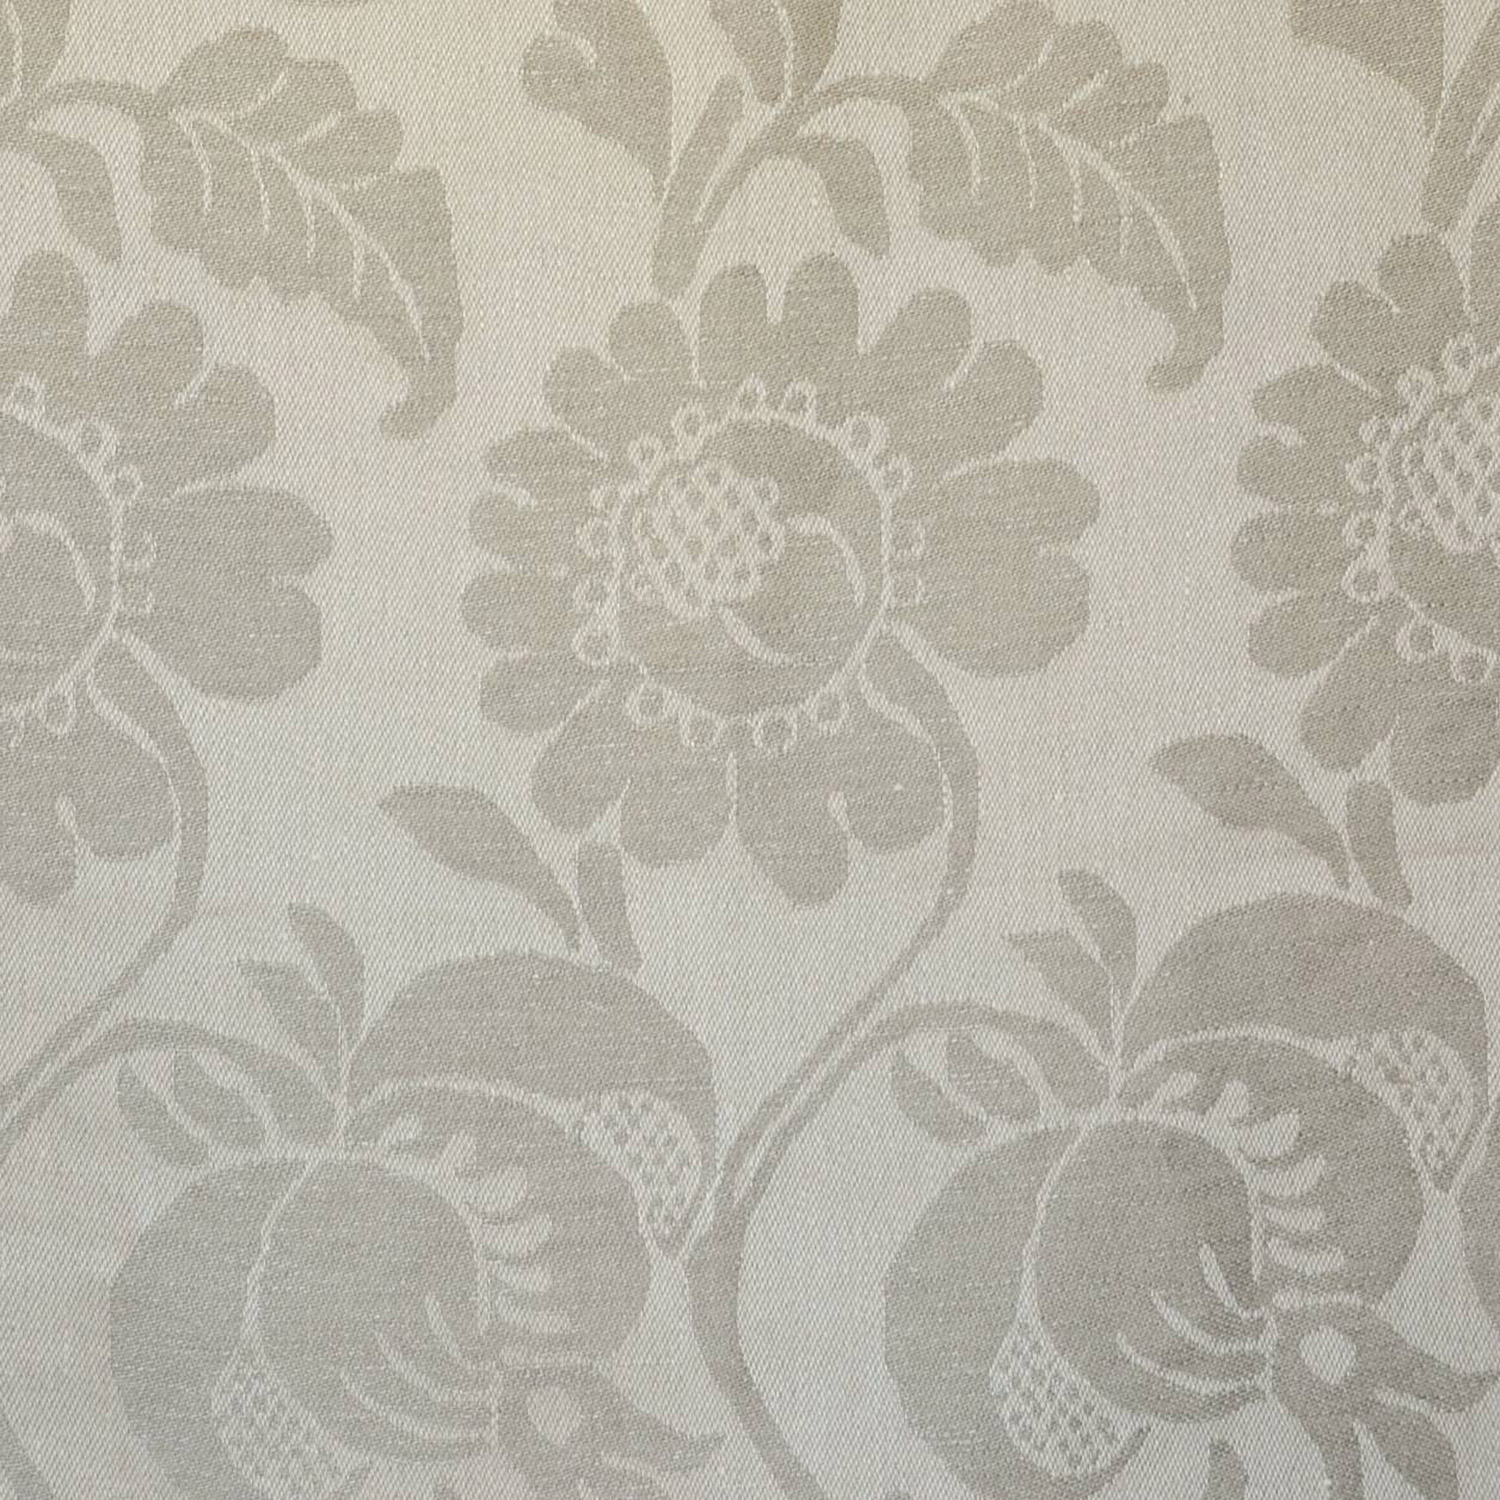 <p><strong>ONSLOW REVERSE</strong>beige 2200-03<a href=/collection-5/onslow-reverse-beige-2200-03>More →</a></p>